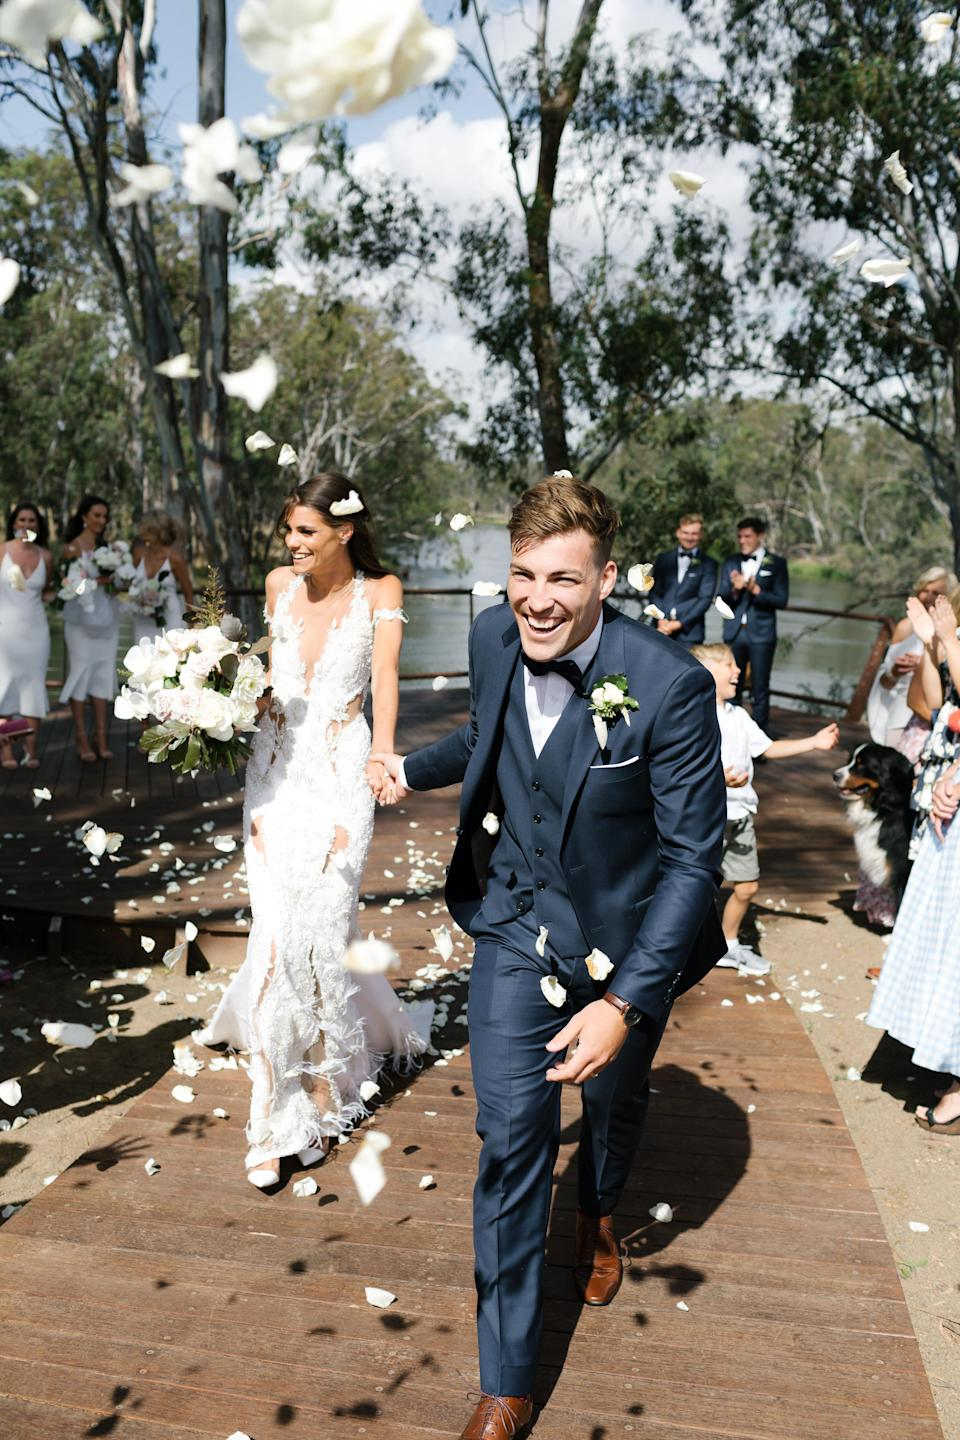 AFL star Jack Viney and Charlotte Ennels tied the knot in a beautiful ceremony over the weekend. Photo: Chloe May